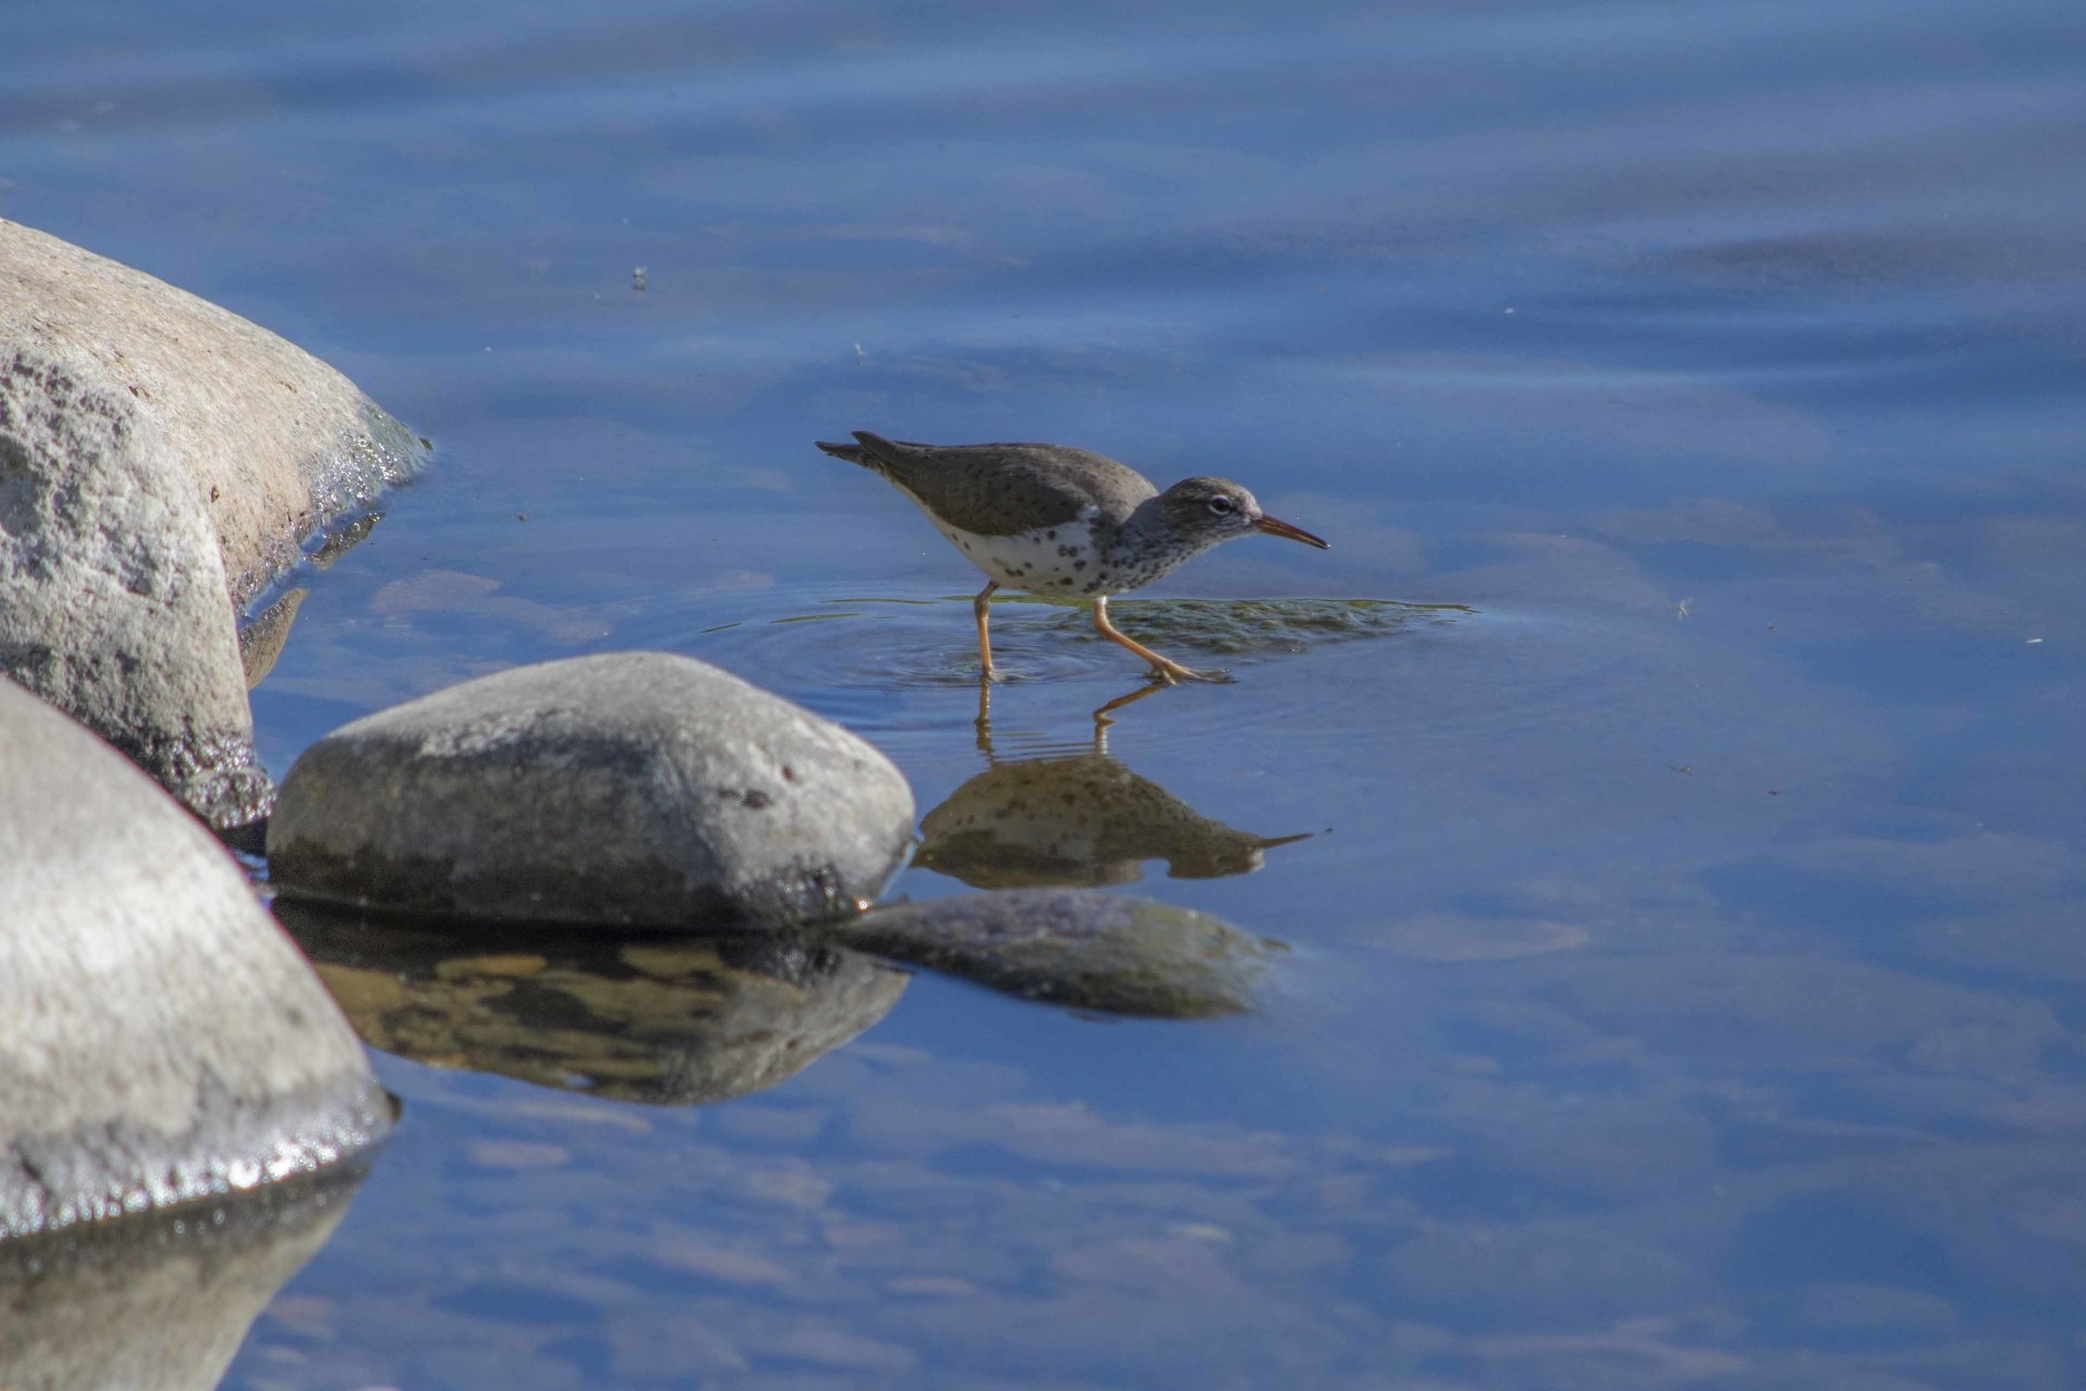 And they also went to Reno's Virginia Lake to take pictures of other common birds, like this Spotted Sandpiper. Photo by Elisabeth Ammon.